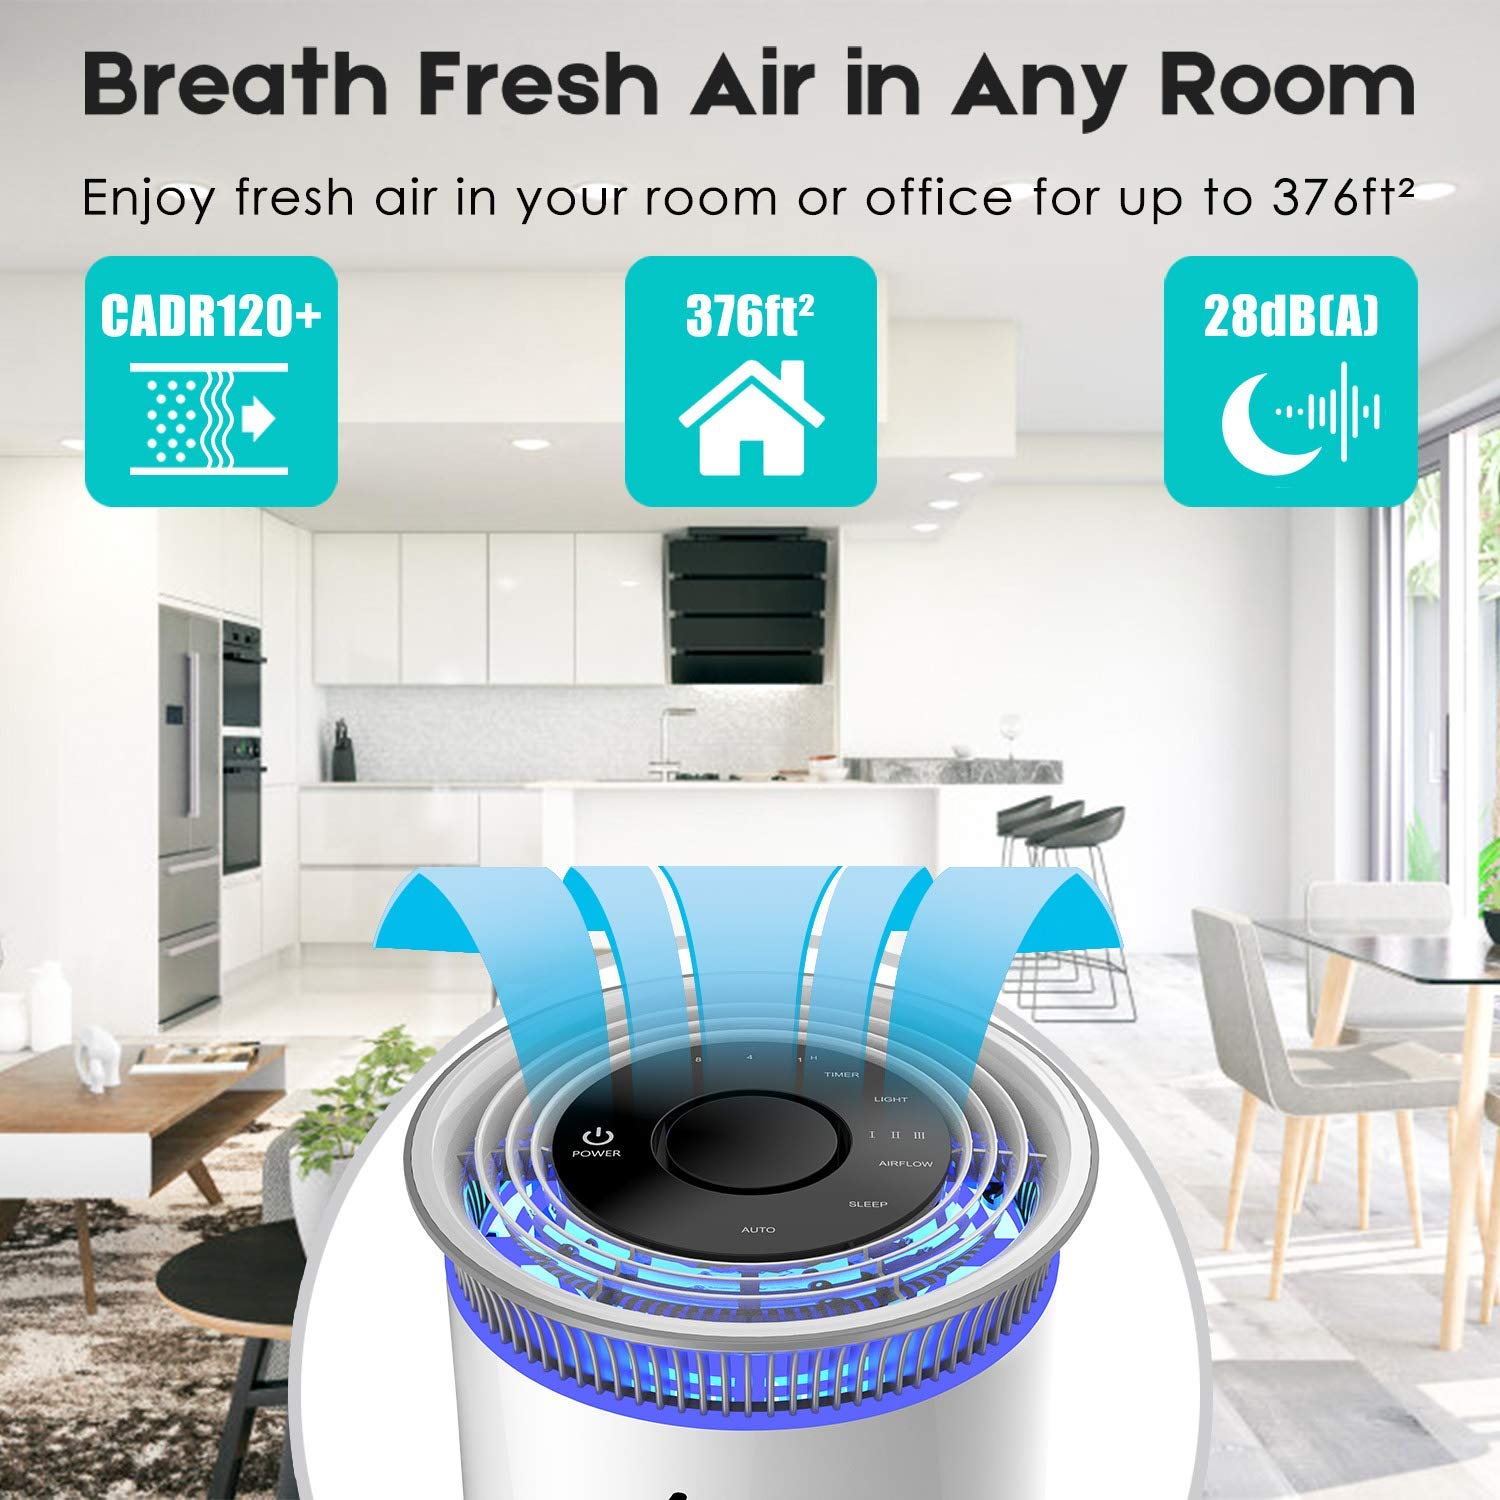 Enther Air Purifier with True HEPA Filter Features